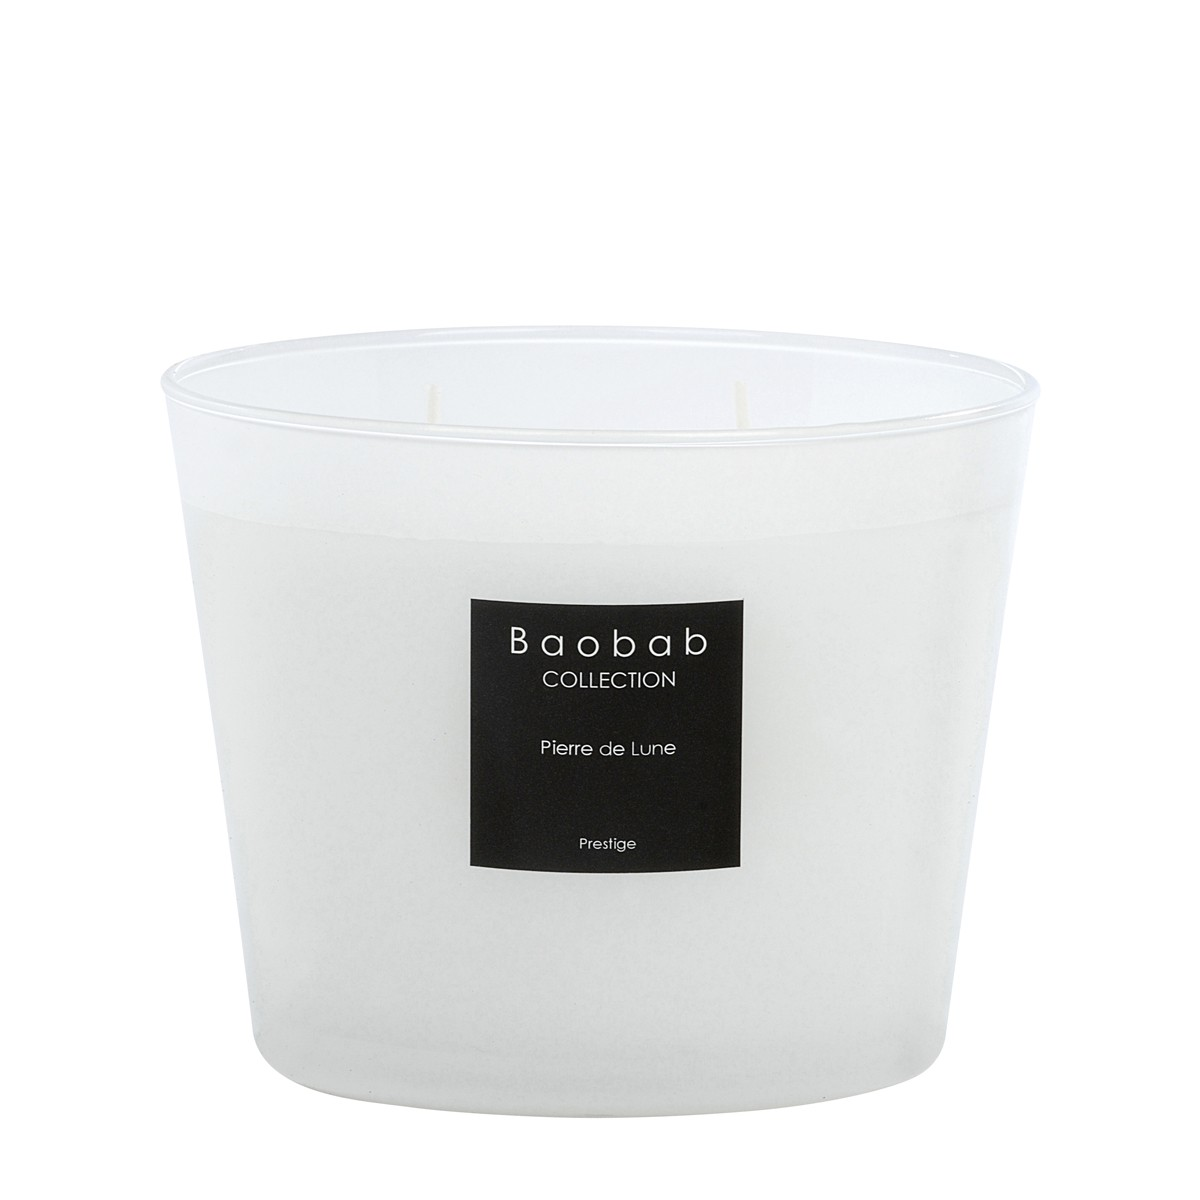 Bougie Baobab Paris Bougie Max 10 Pierre De Lune De Baobab Collection